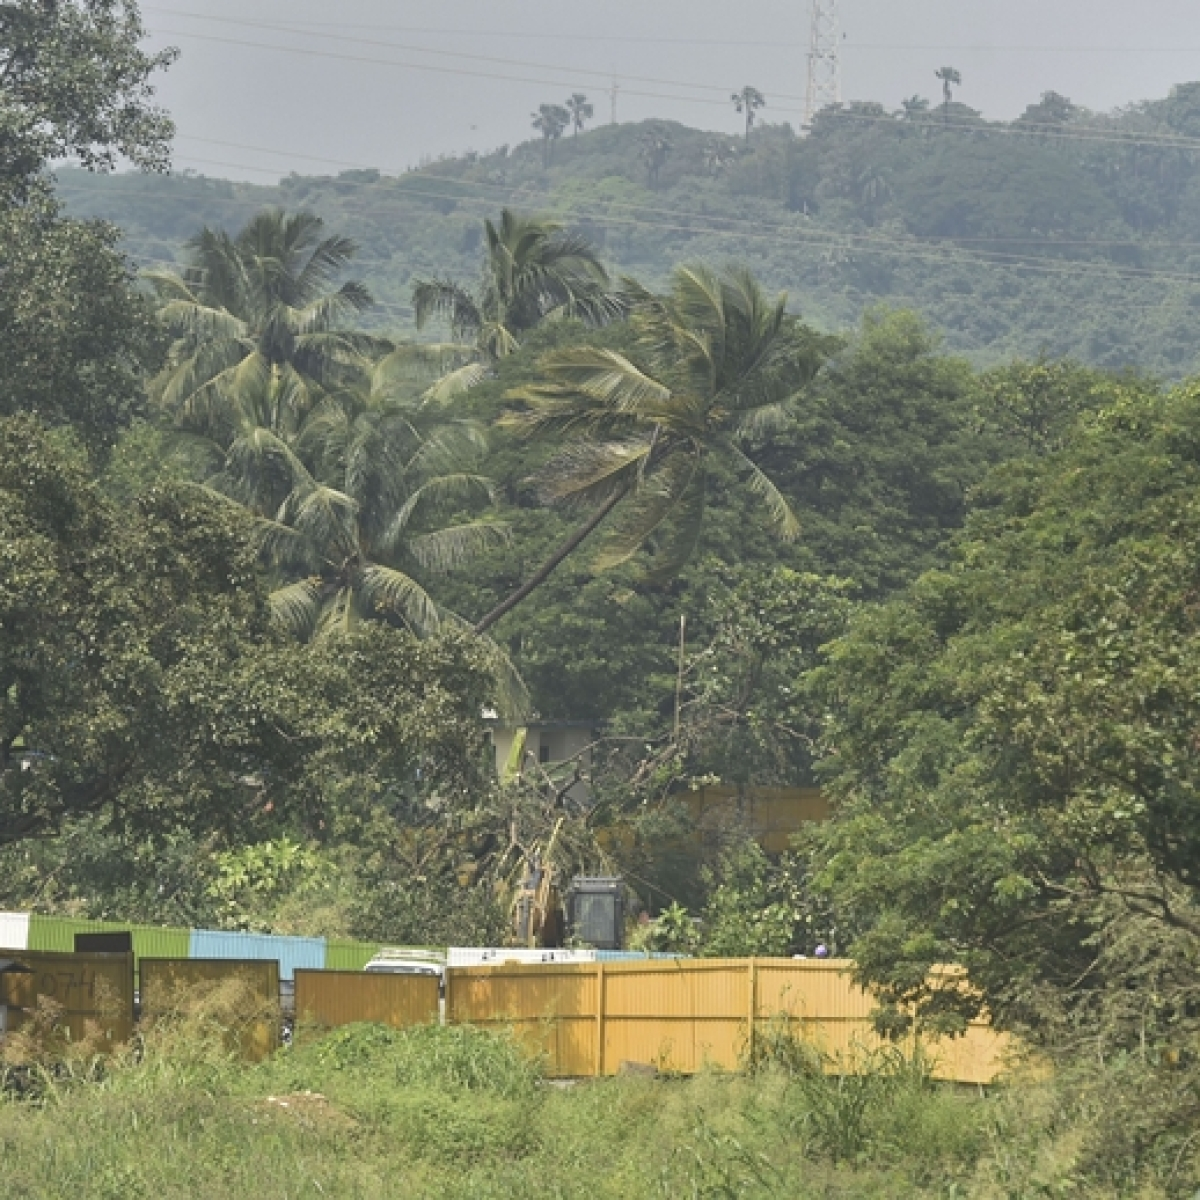 407 acres of land in Aarey Colony can now be used for infrastructure and building construction projects: Report